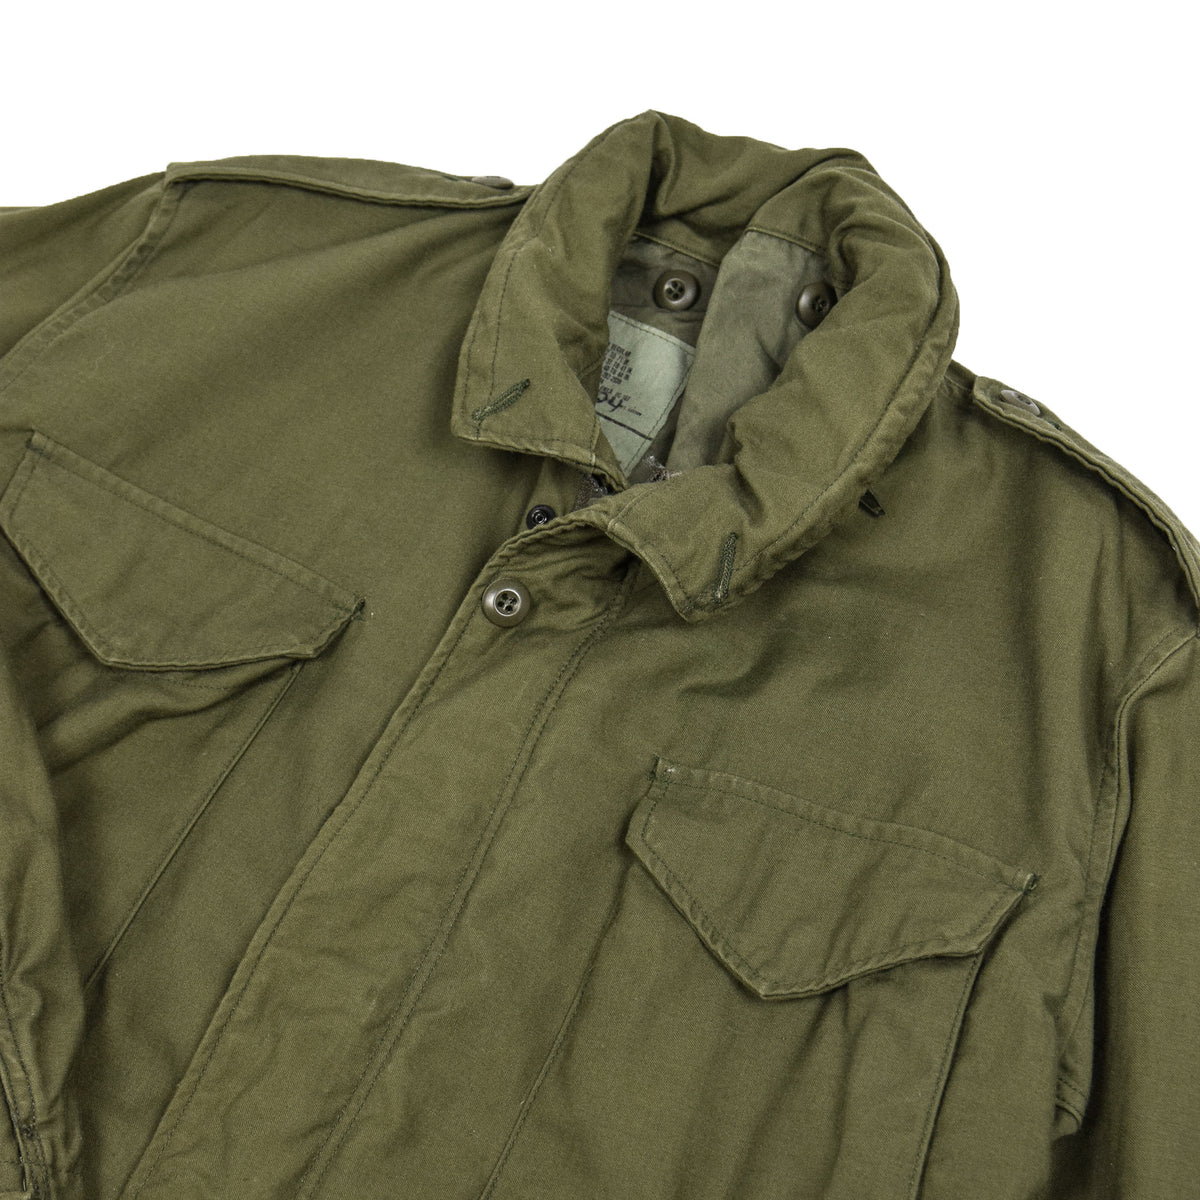 Vintage 80s M-65 Man's Field Cotton Sateen 0G-107 Green US Army Coat M collar details